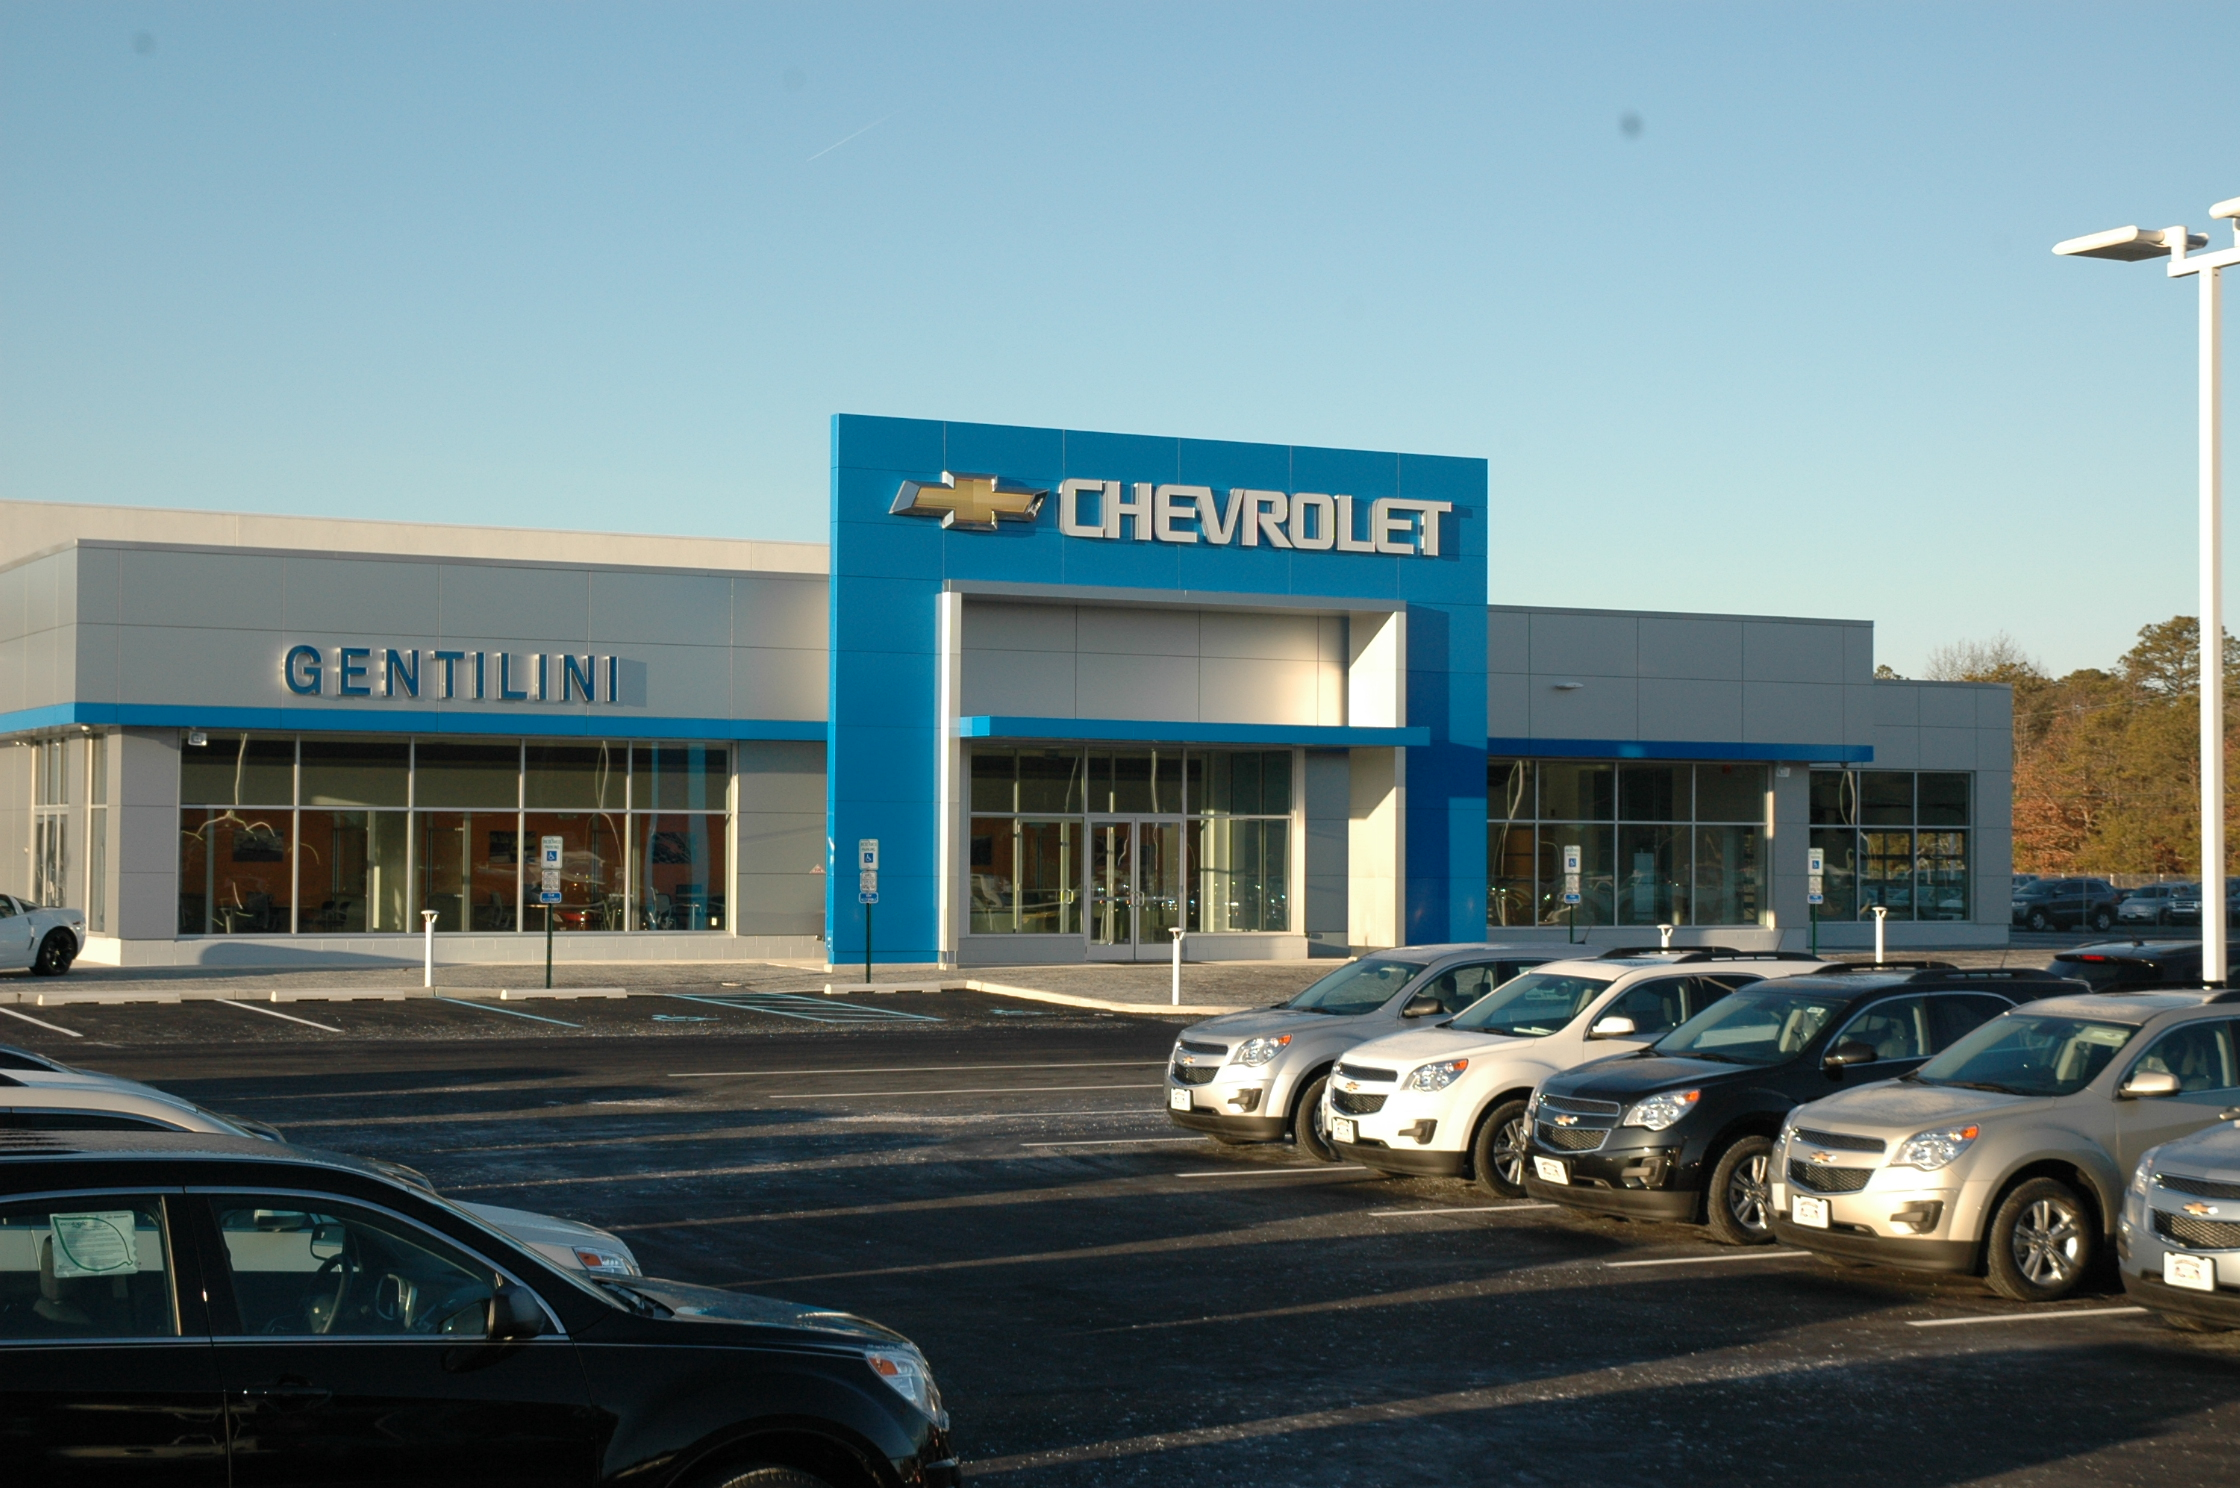 gentilini motors opens new chevrolet dealership in south jersey. Black Bedroom Furniture Sets. Home Design Ideas